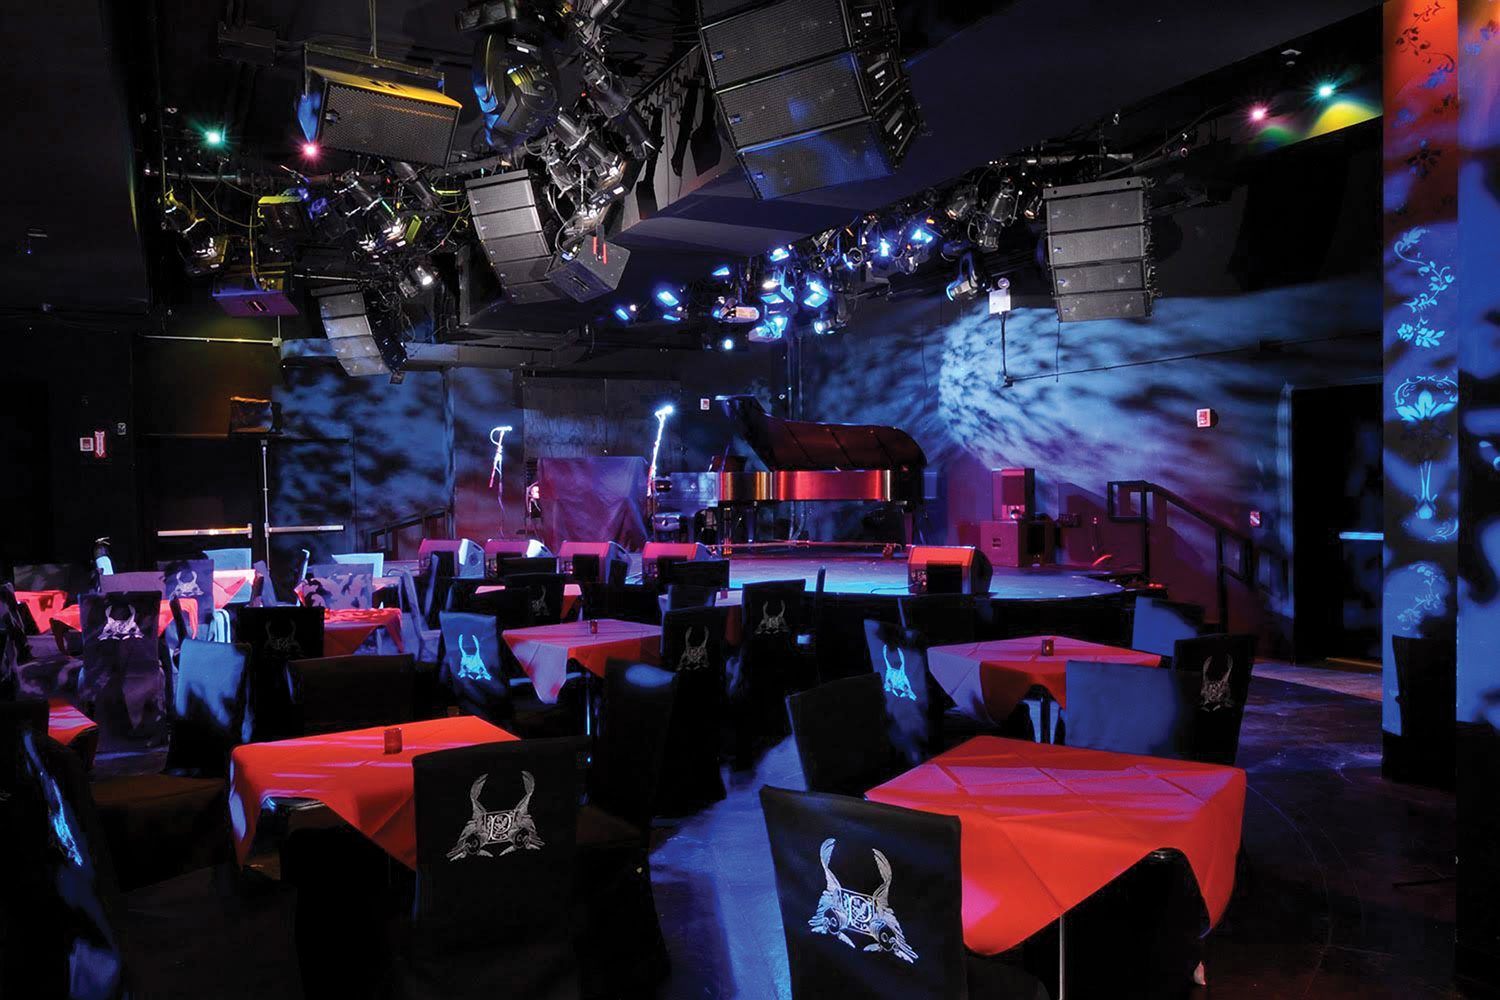 Le Poisson Rouge in New York City's Greenwich Village features a flexible, intimate performance space with a capacity of 800 people.